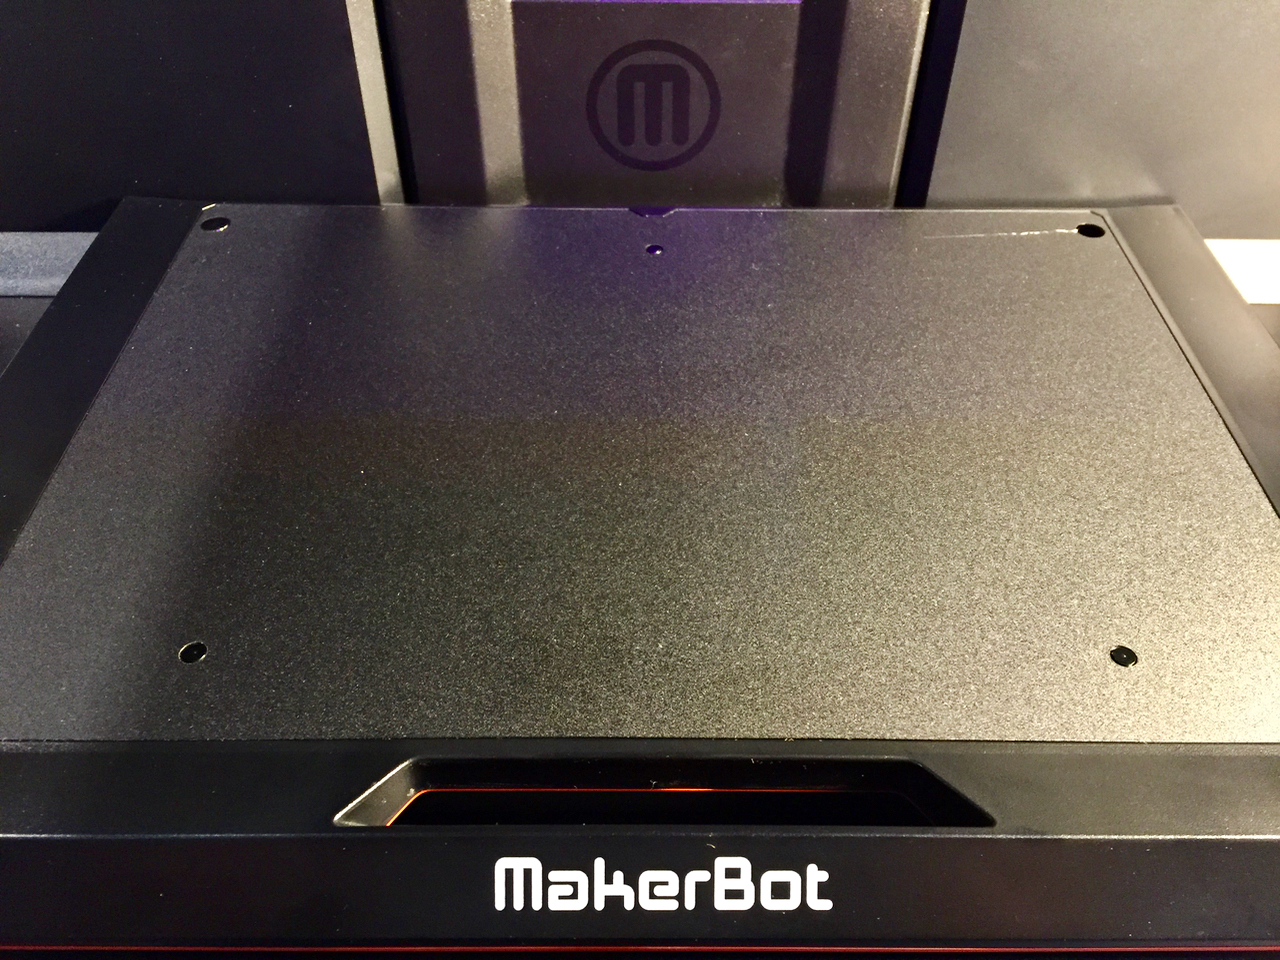 The virgin surface of the new MakerBot Replicator+ print plate